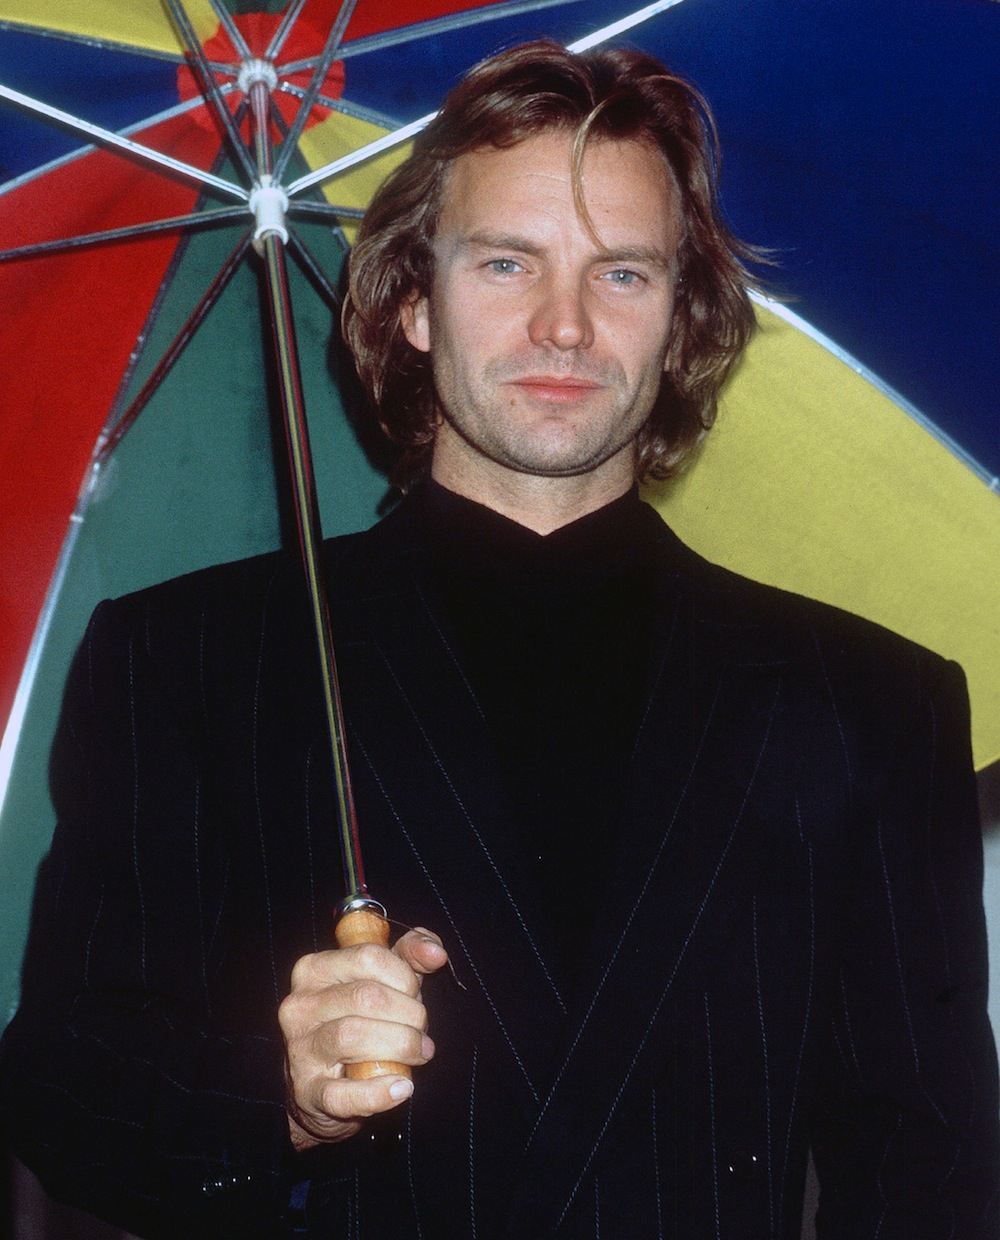 Sting aka Gordon Sumner photographed at a Photocall to launch 'Nothing Like The Sun' album and tour London, England - 13.09.87 Featuring: Sting aka Gordon Sumner Where: London, England, United Kingdom When: 13 Sep 1987 Credit: WENN **Only available for publication in USA**